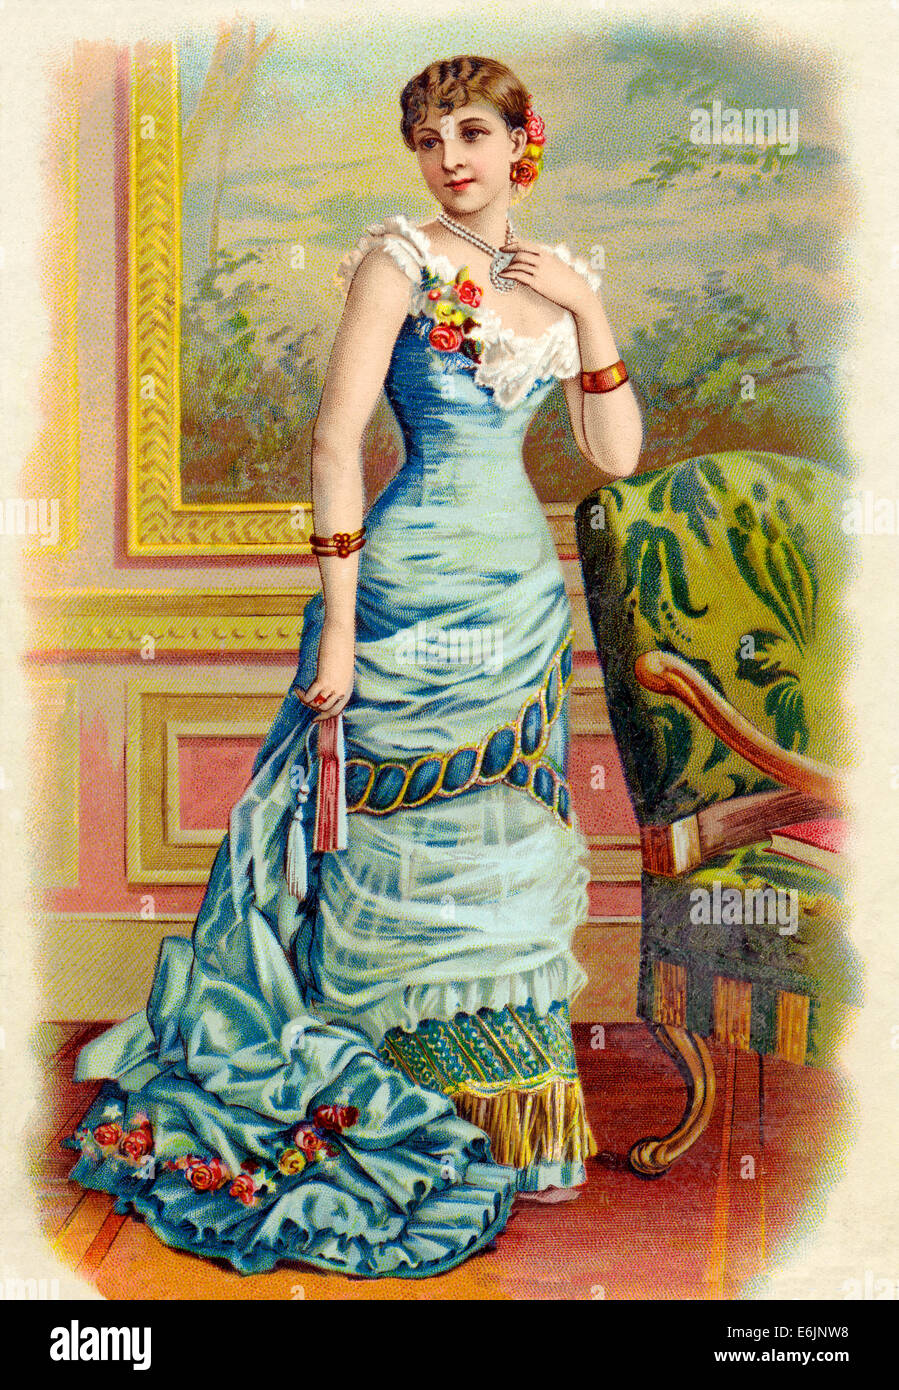 Victorian Lady 1890s chromolithograph of a fashionable lady dressed up for an evening out in a fine gown - Stock Image